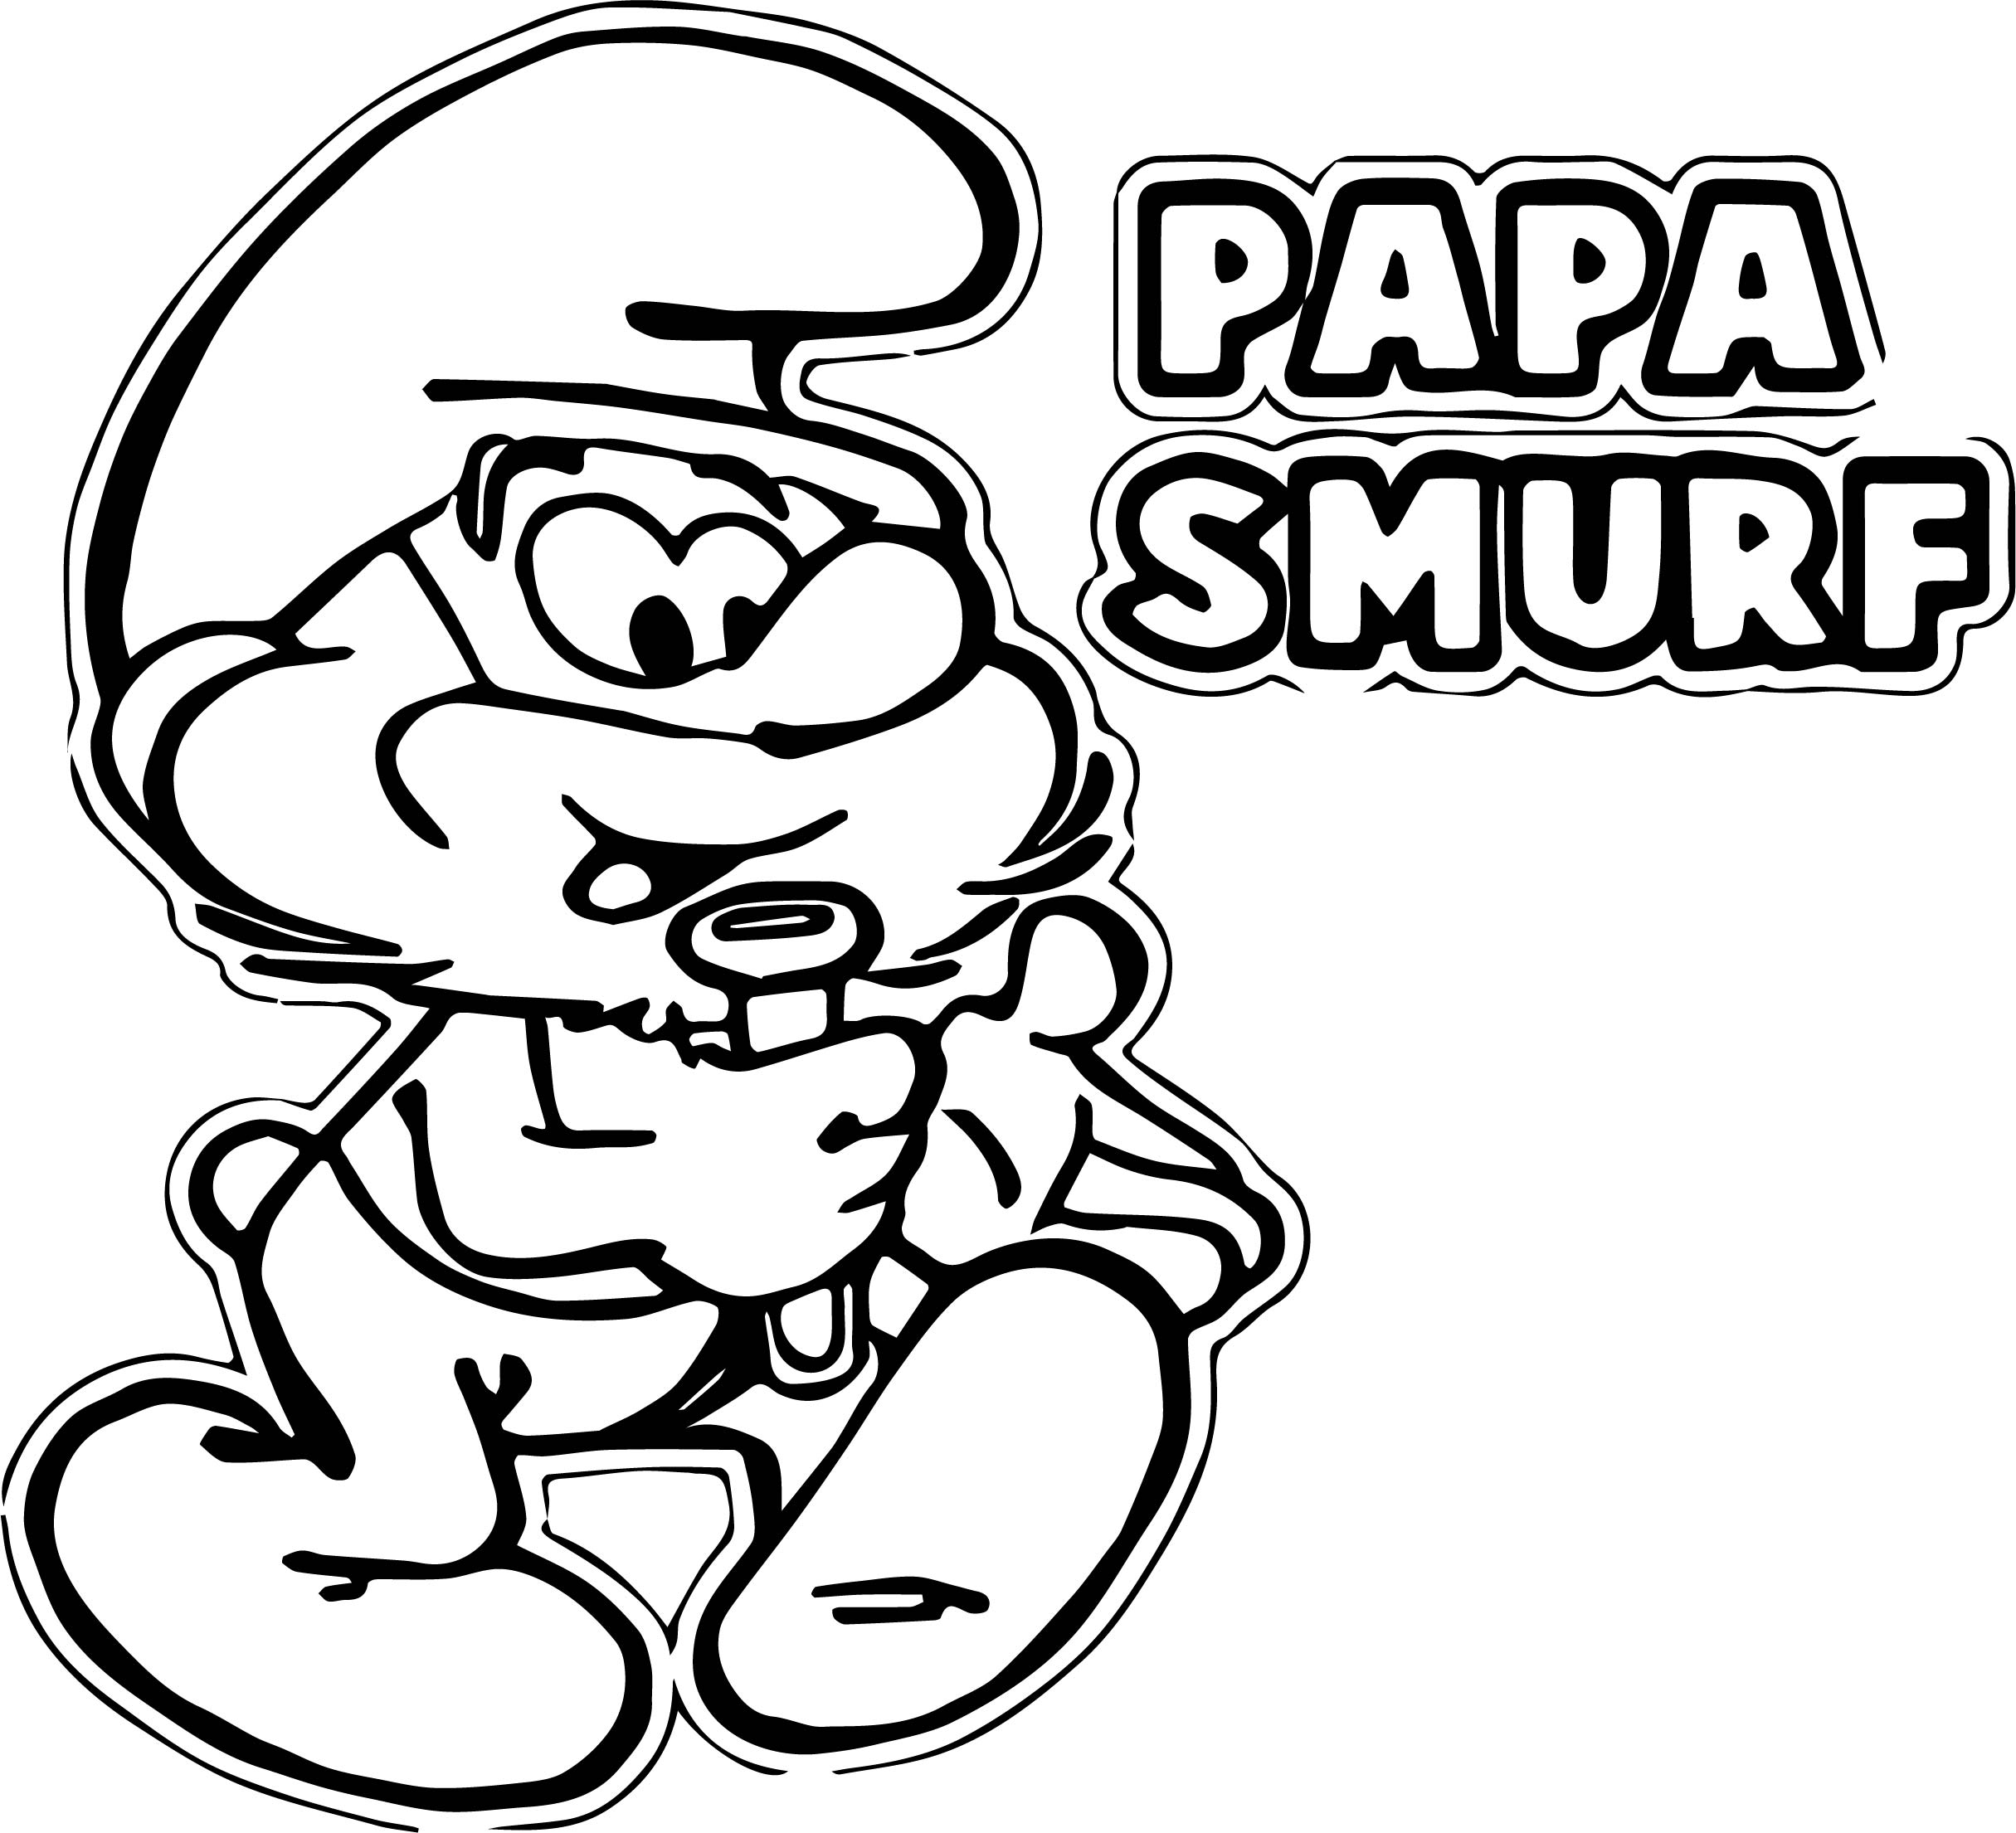 Papa smurf coloring pages for Papa smurf coloring pages